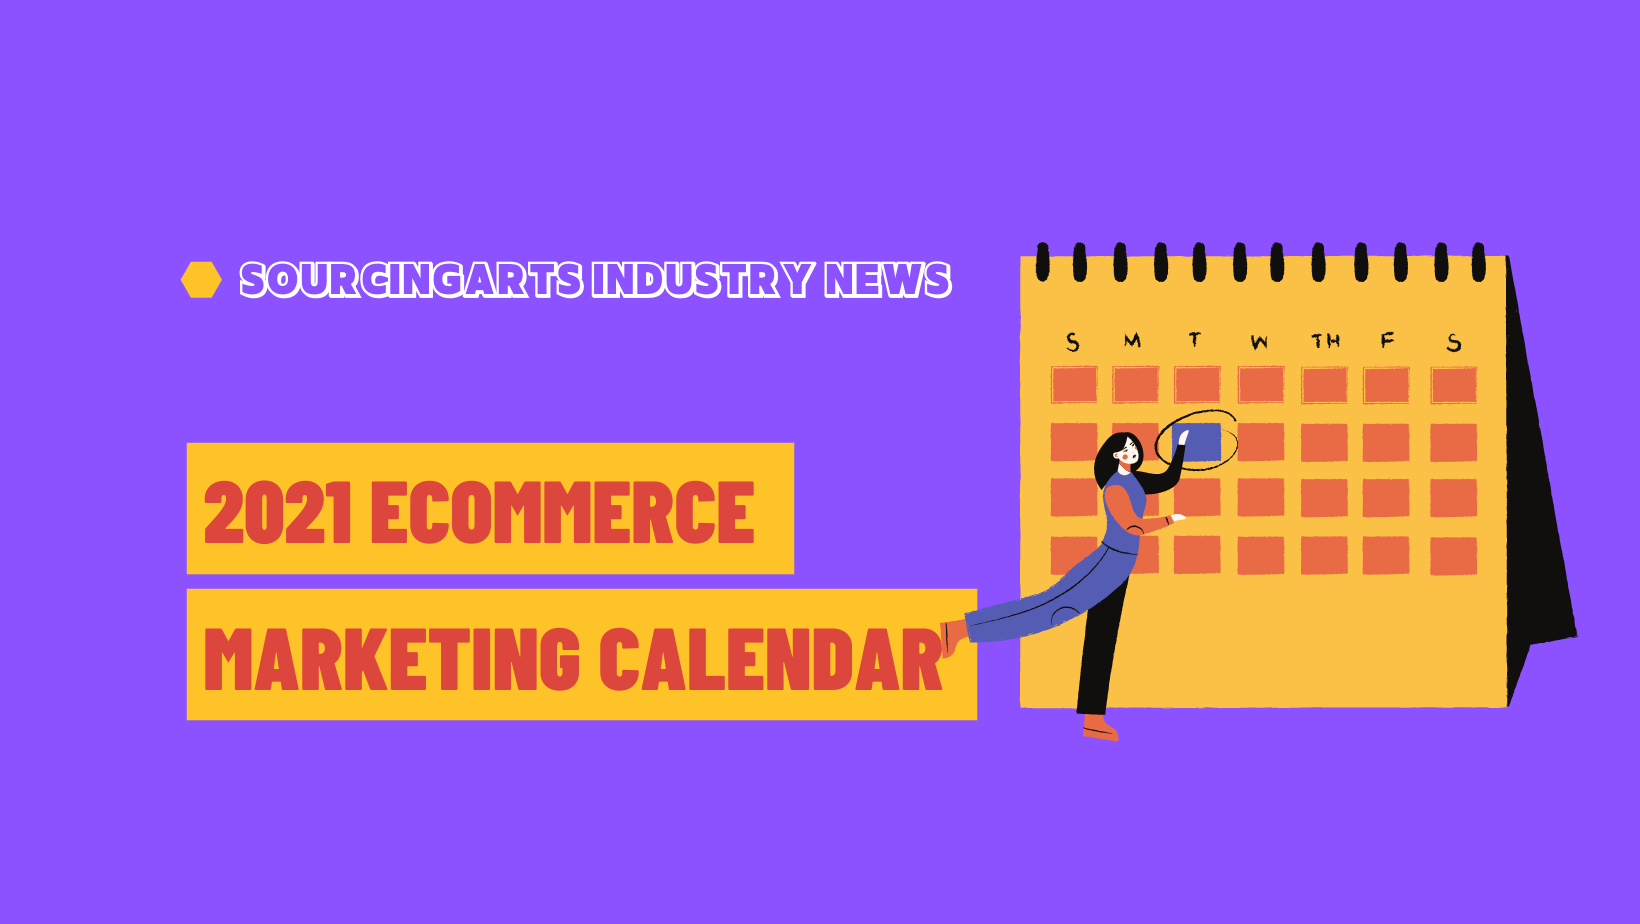 The complete 2021 ecommerce marketing calendar